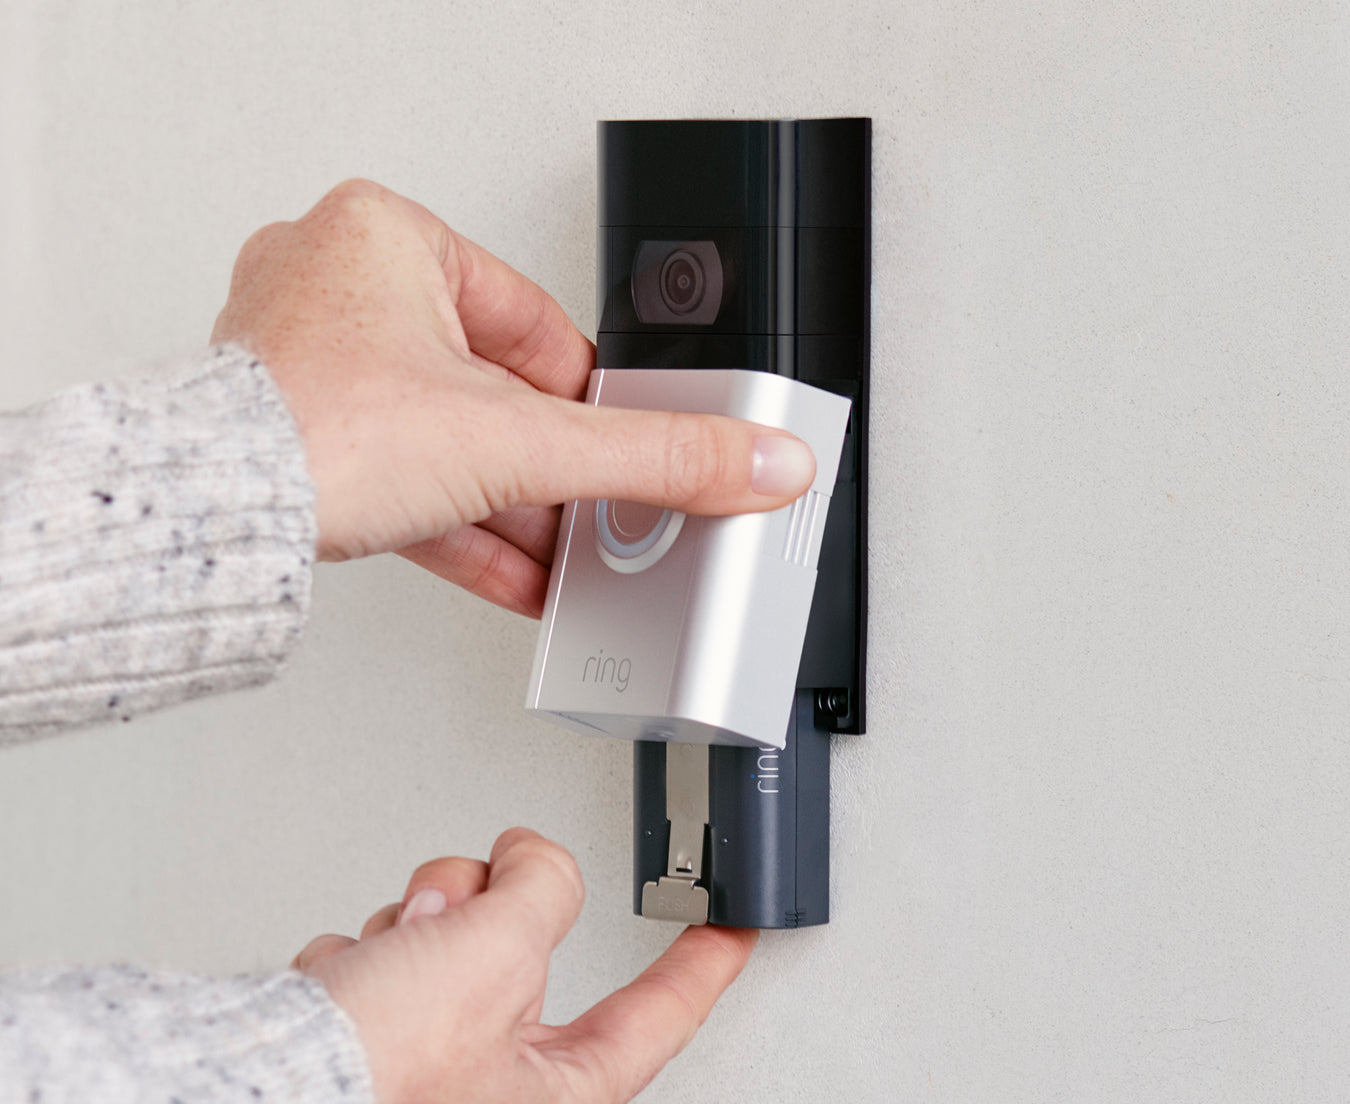 Ring Video Doorbell 3 with battery pack